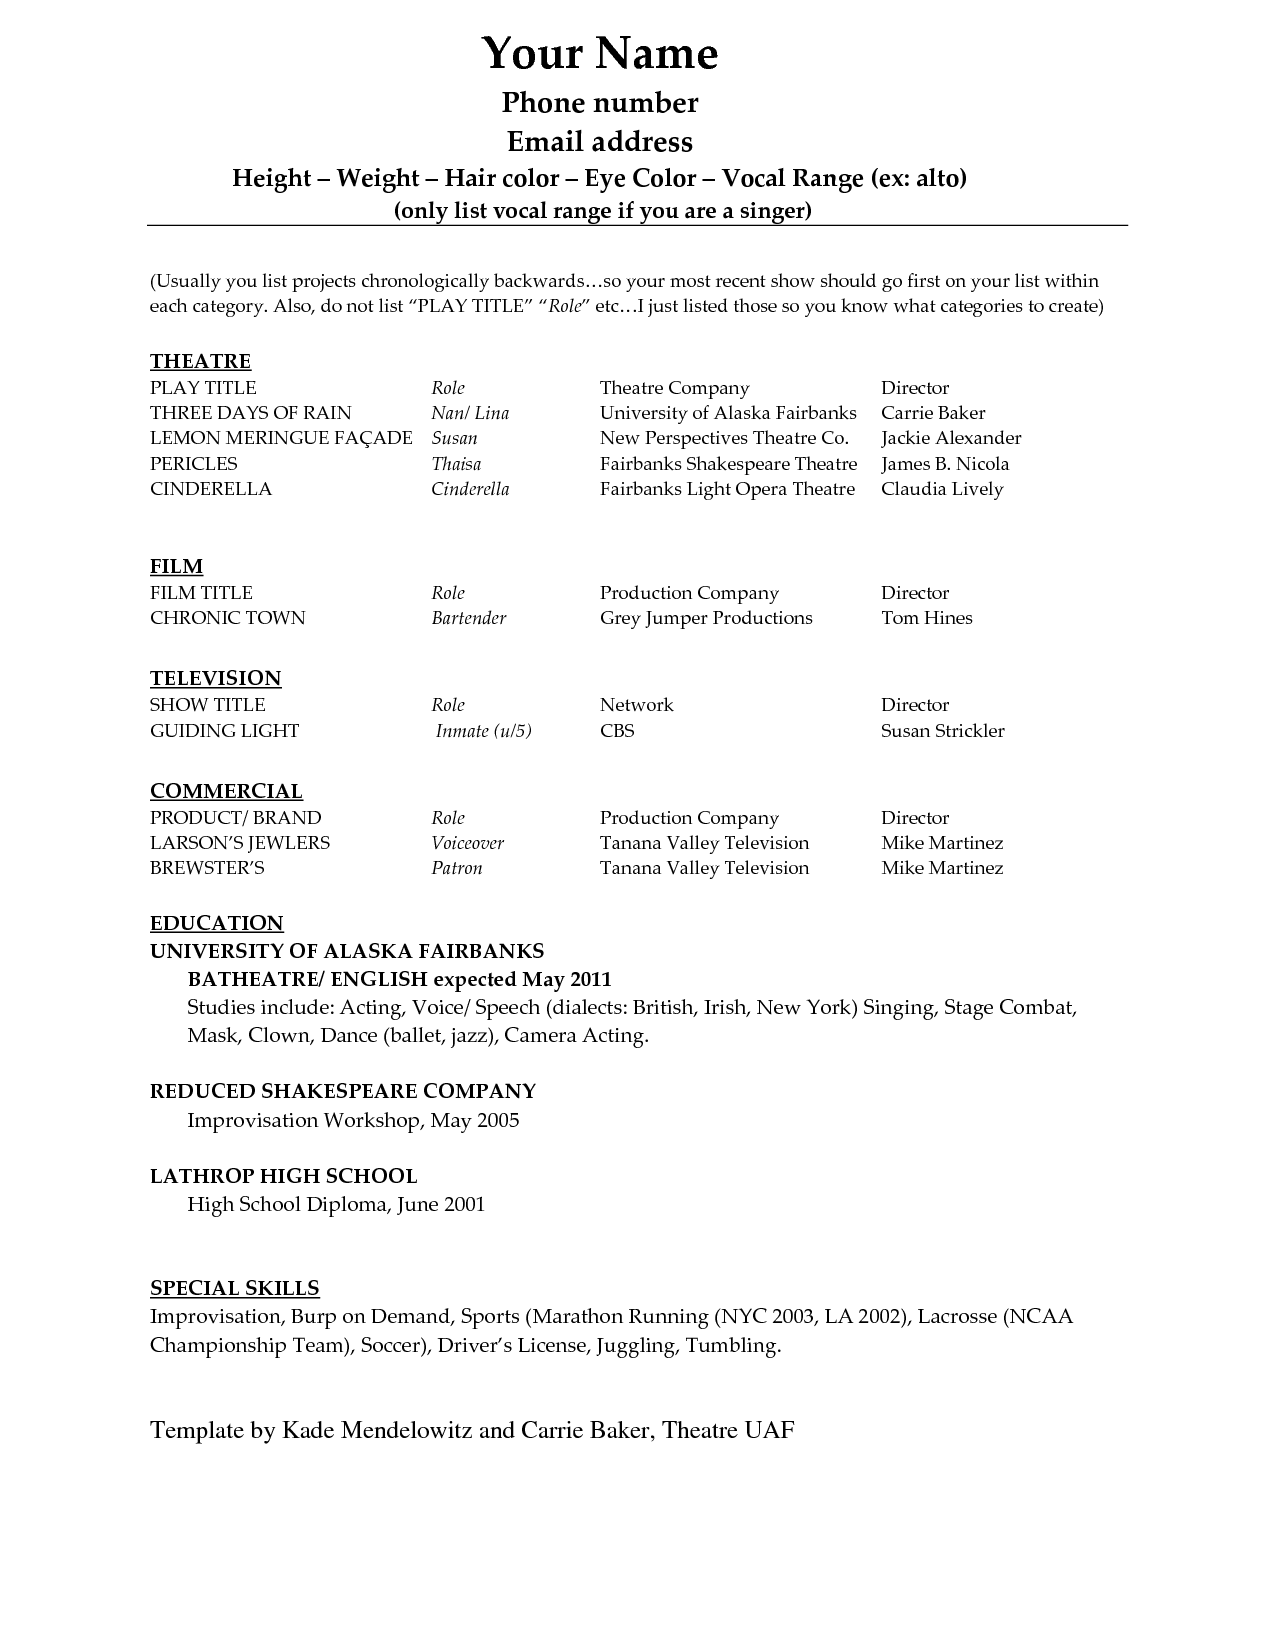 Acting Resume Template Download Free   Http://www.resumecareer.info/  Professional Letter Template Word 2010